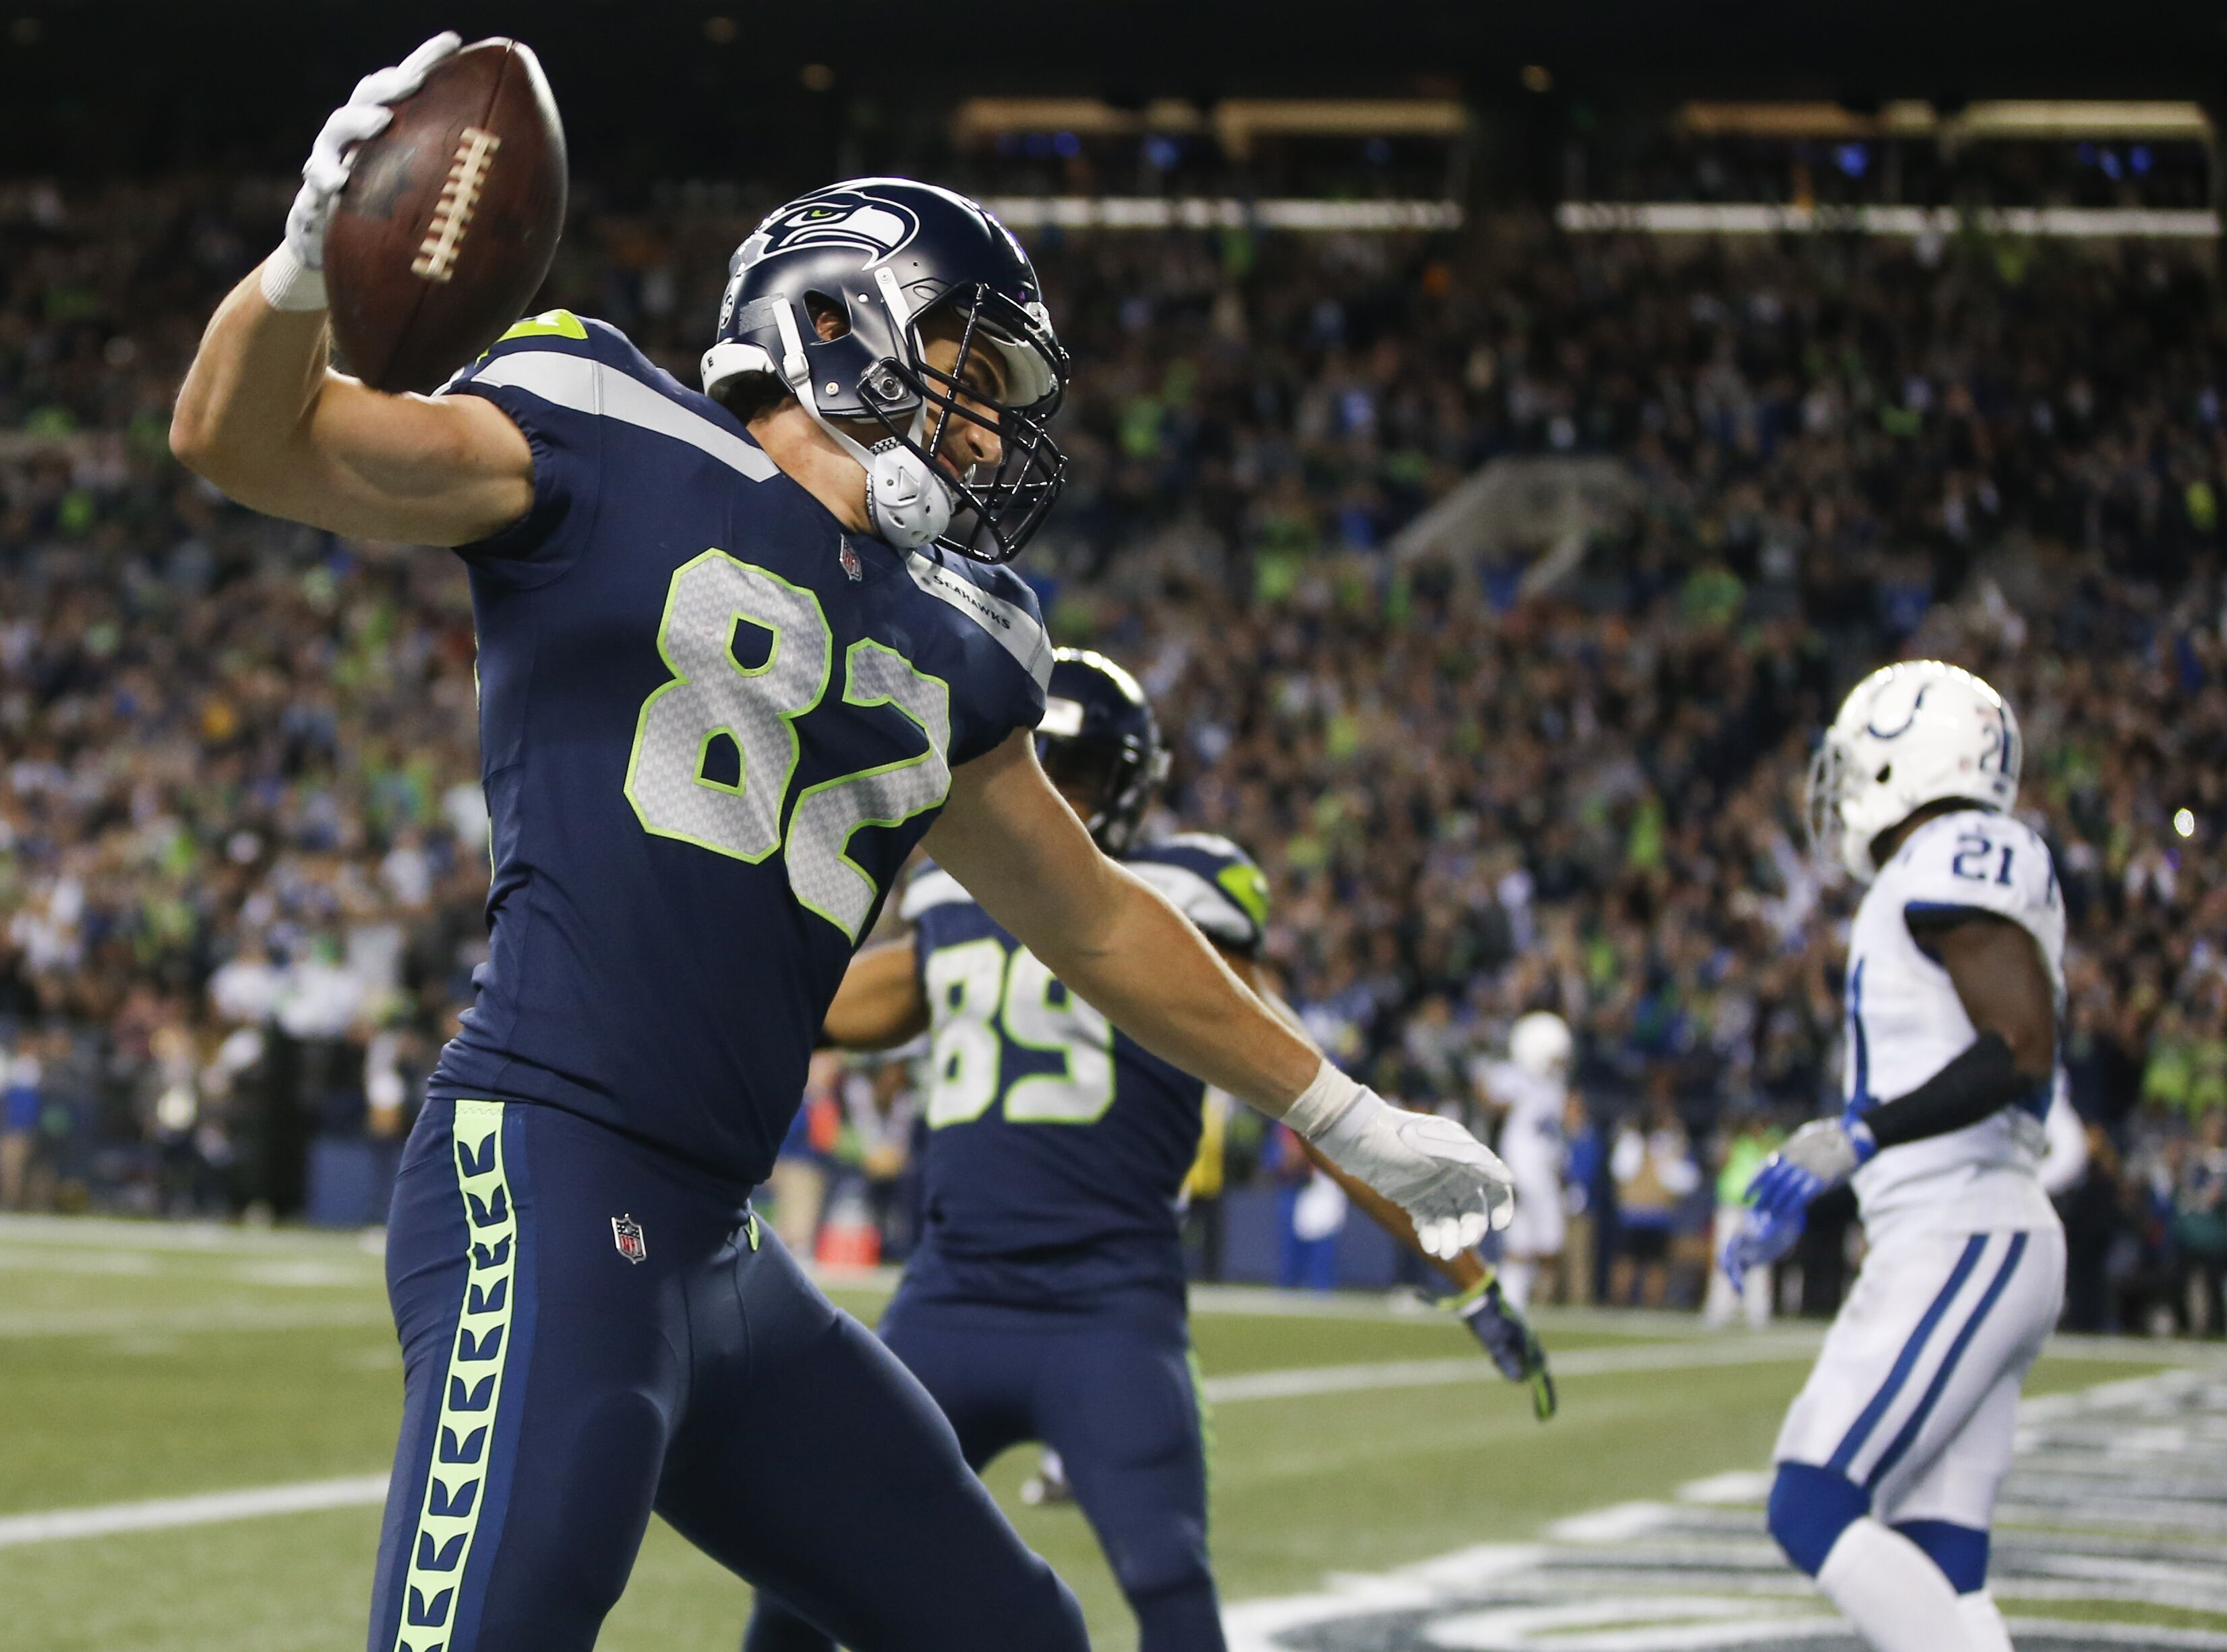 856477812-indianapolis-colts-v-seattle-seahawks.jpg